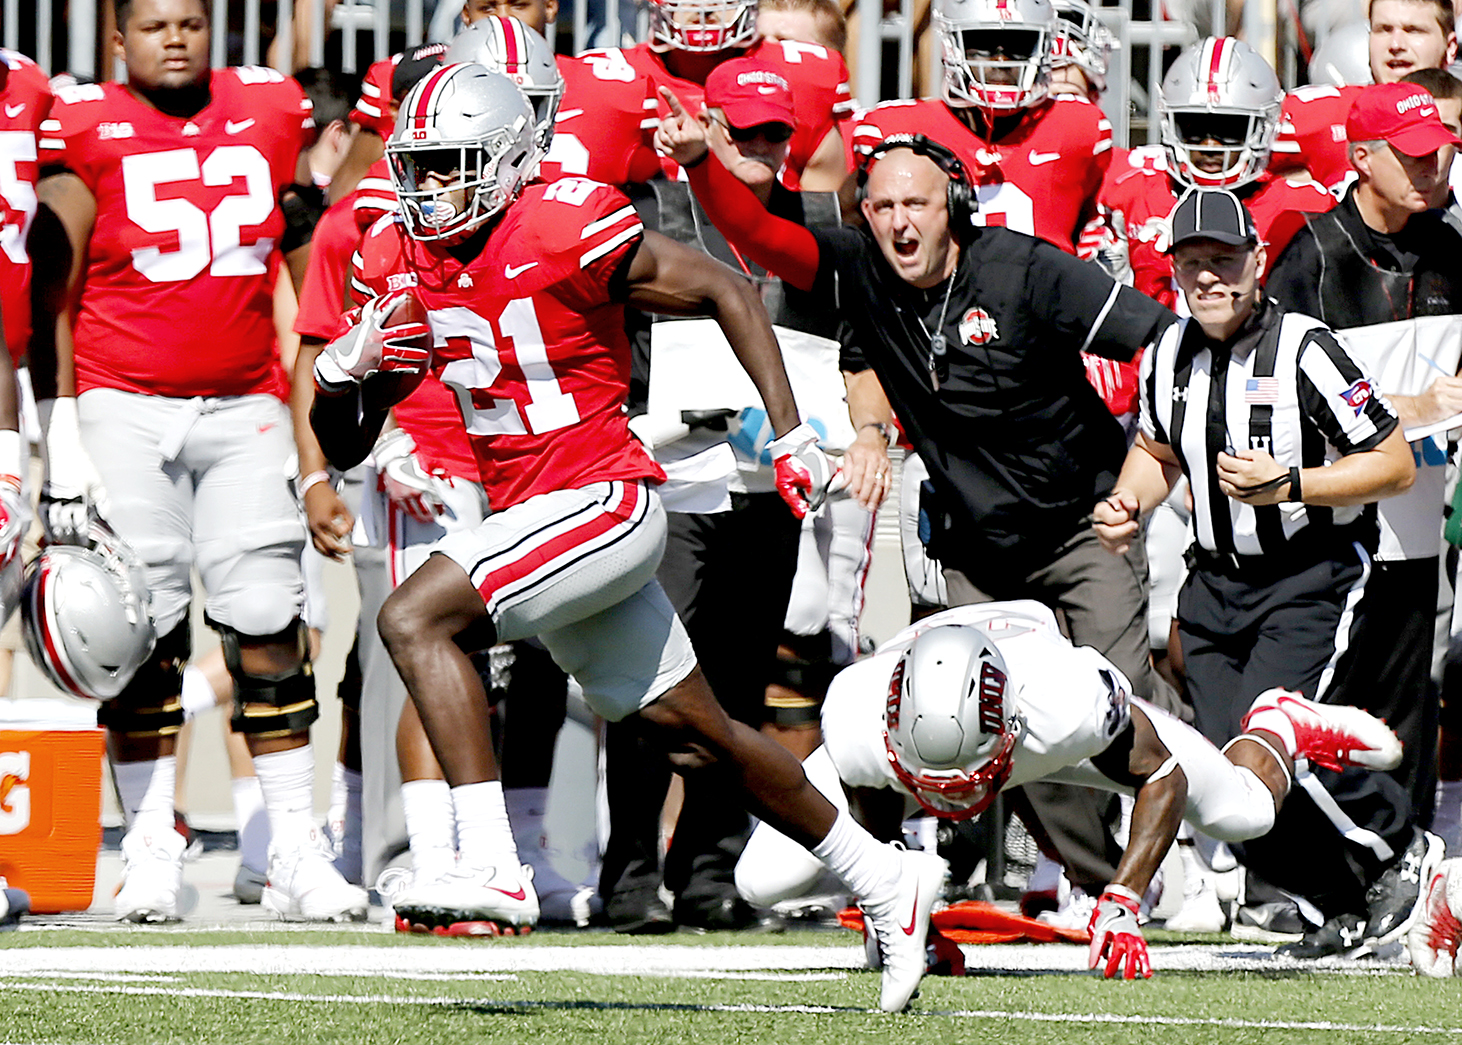 parris campbell u0026 39 s status in doubt for iowa game